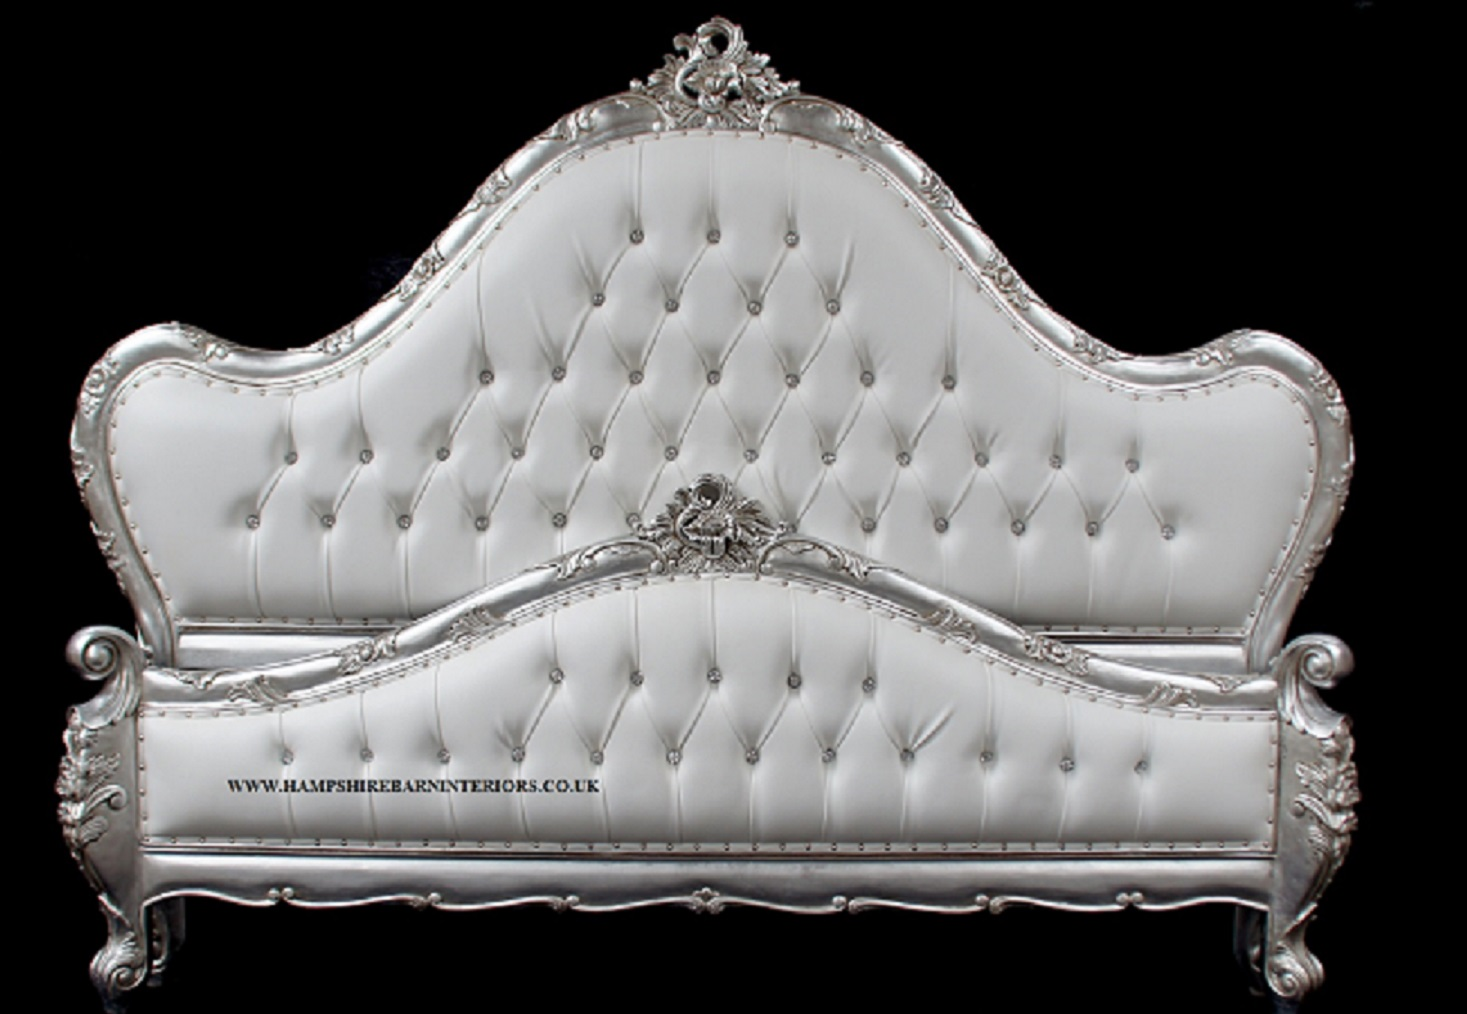 A Charles French Louis Style Bed In Silver Leaf And Upholstered In A White Faux Leather Fabric Crystal Buttons Hampshire Barn Interiors